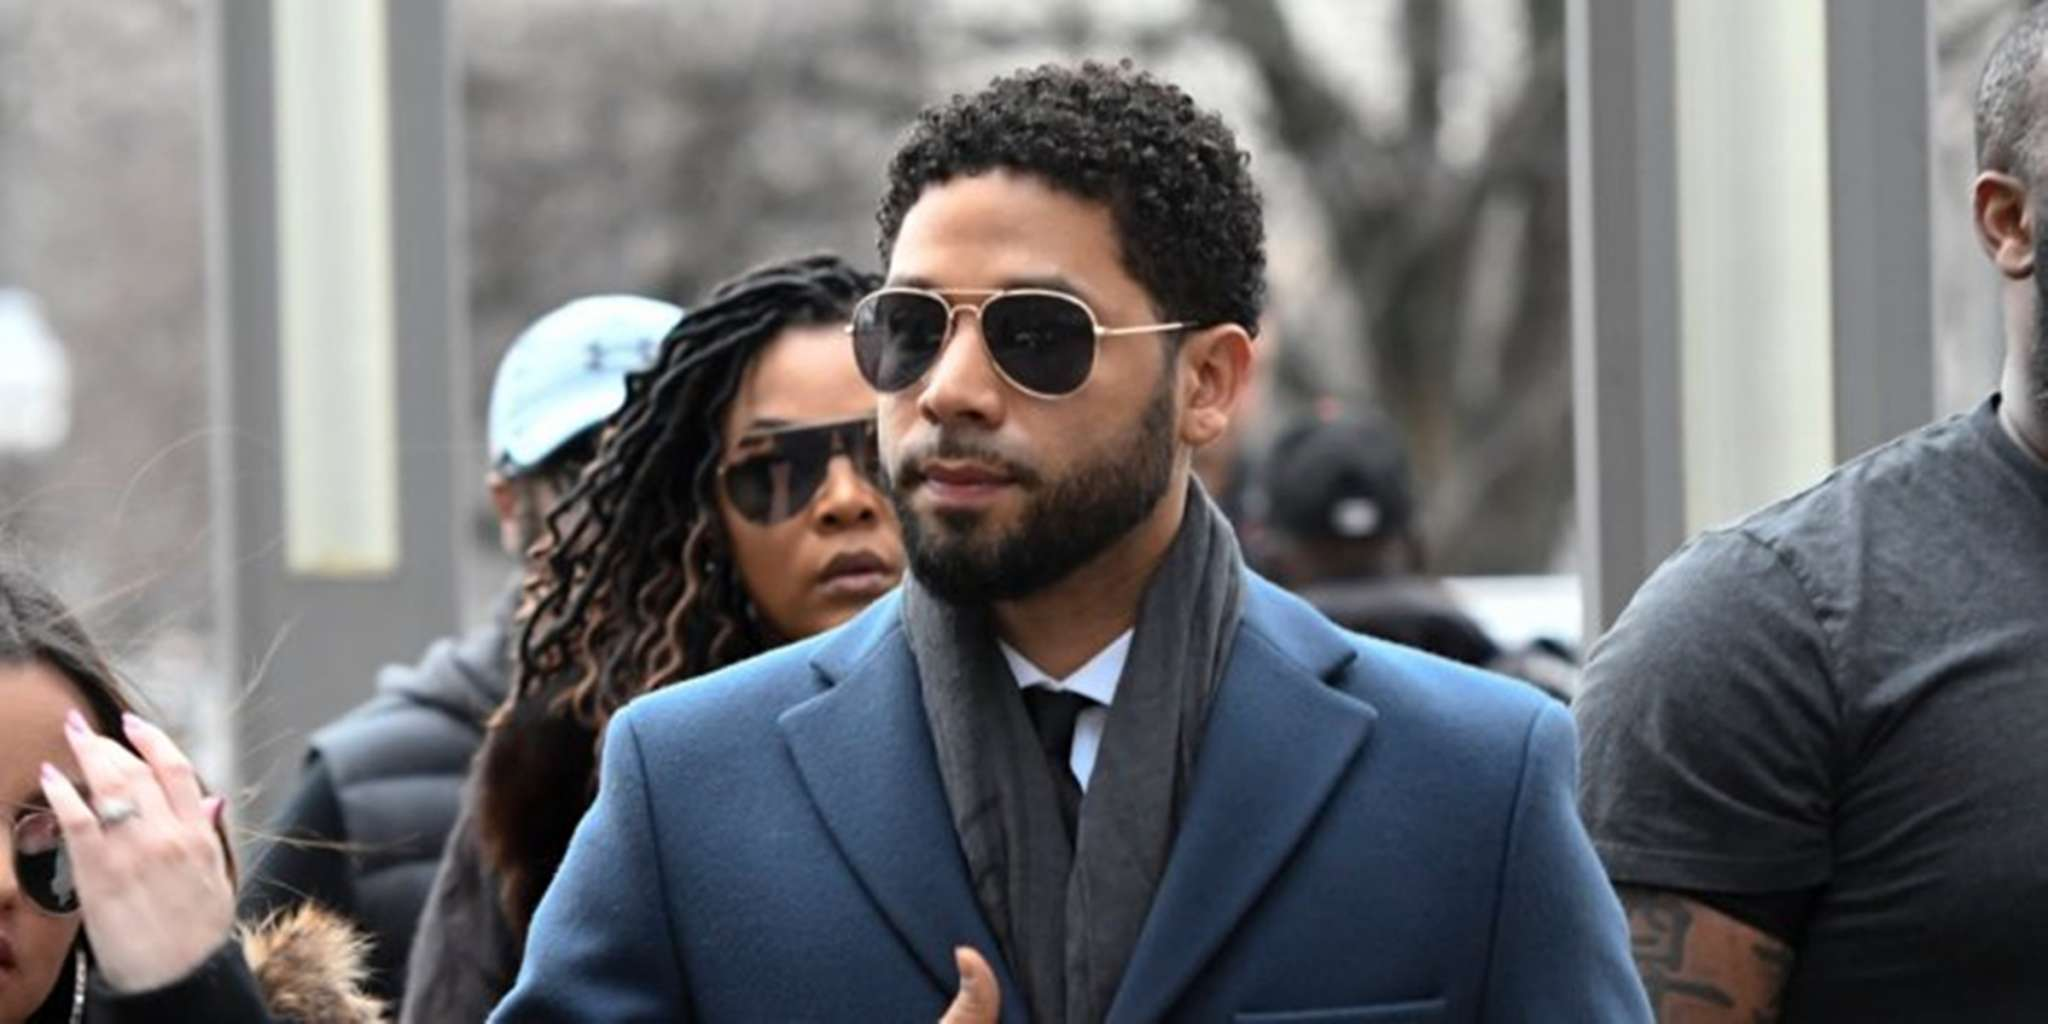 empire-actor-jussie-smollett-reveals-plans-for-the-future-after-charges-got-dropped-amid-angry-reactions-from-chicago-mayor-rahm-emanuel-and-police-superintendent-eddie-johnson